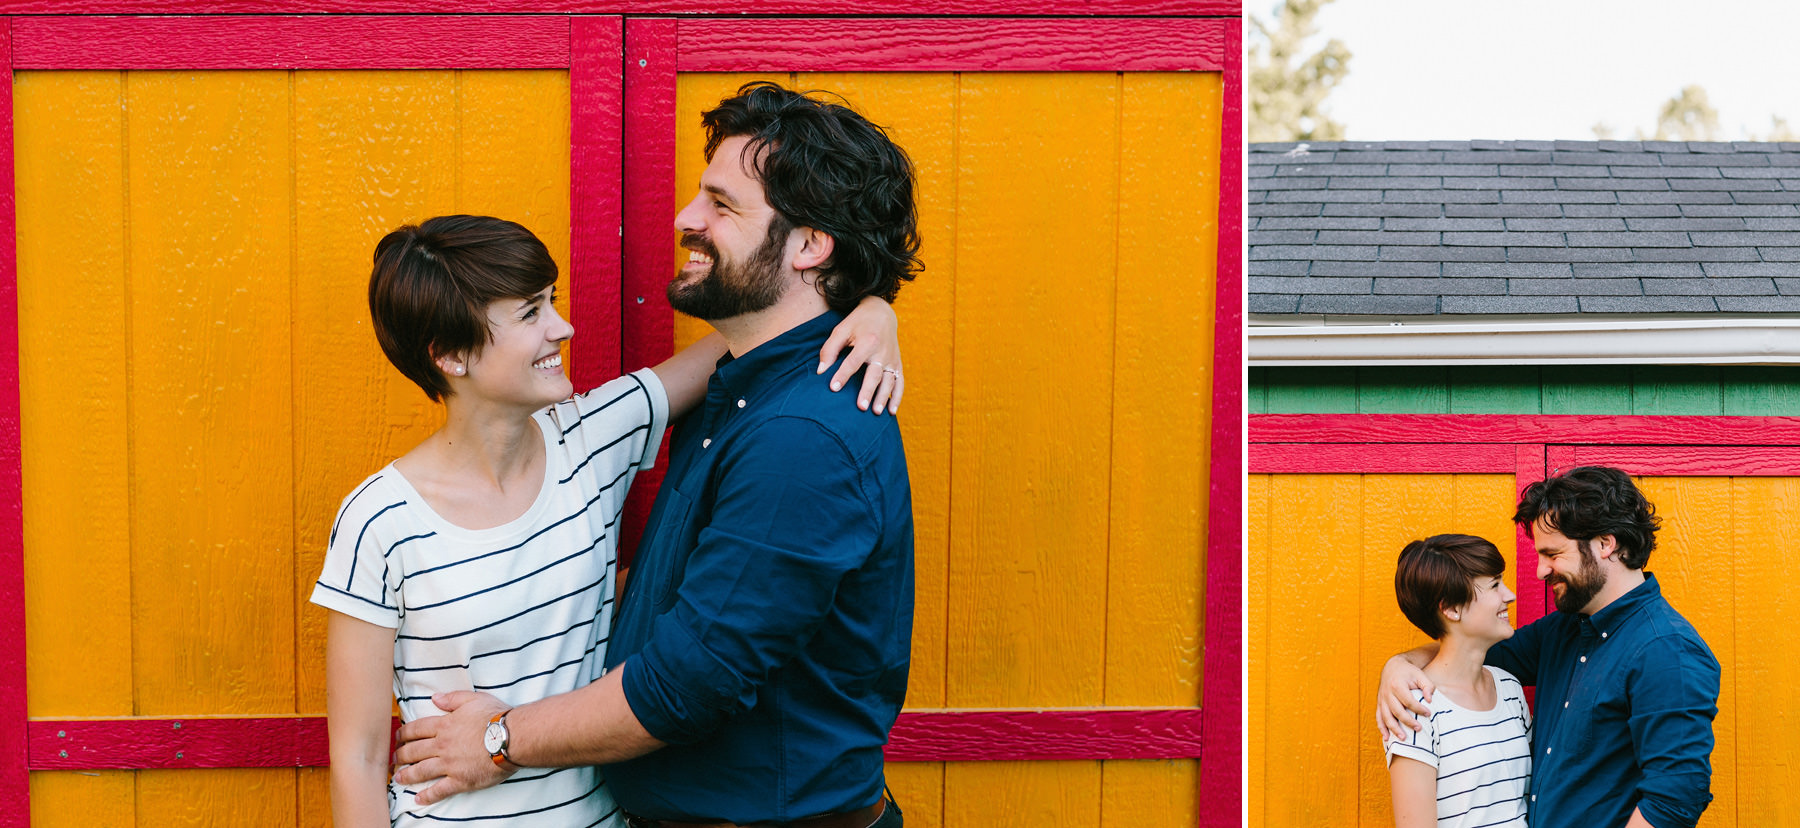 252_Westside Local & Westside Community Garden Engagement Session Kansas City, Missouri_Kindling Wedding Photography.JPG